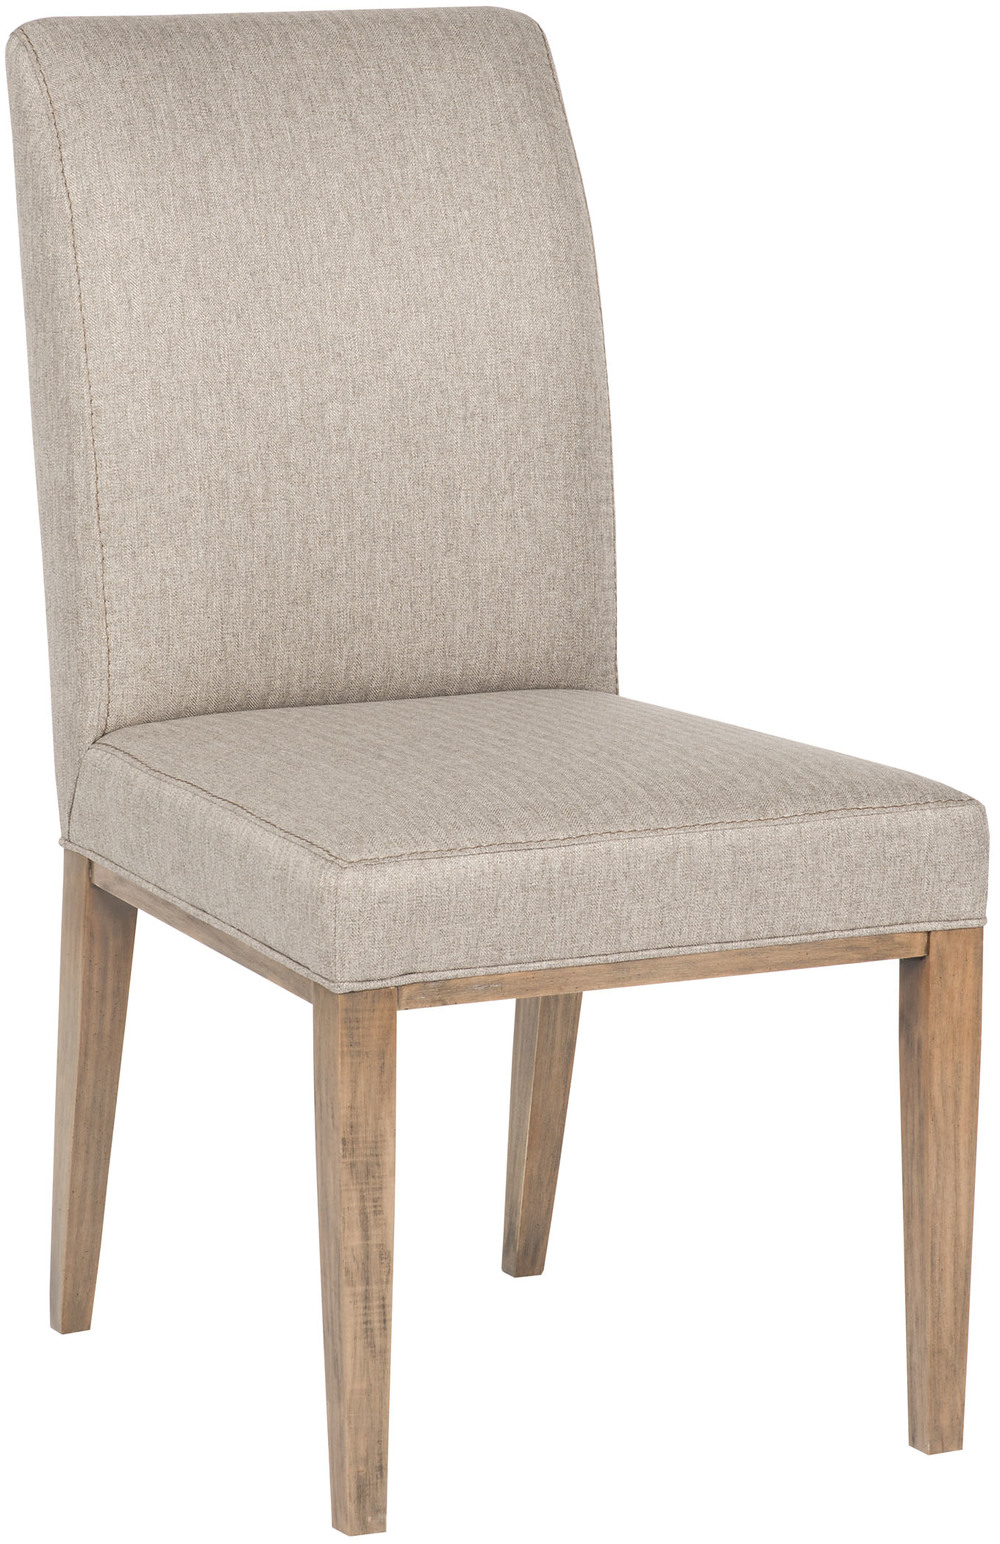 VANGUARD FURNITURE COMPANY - Felix Side Chair